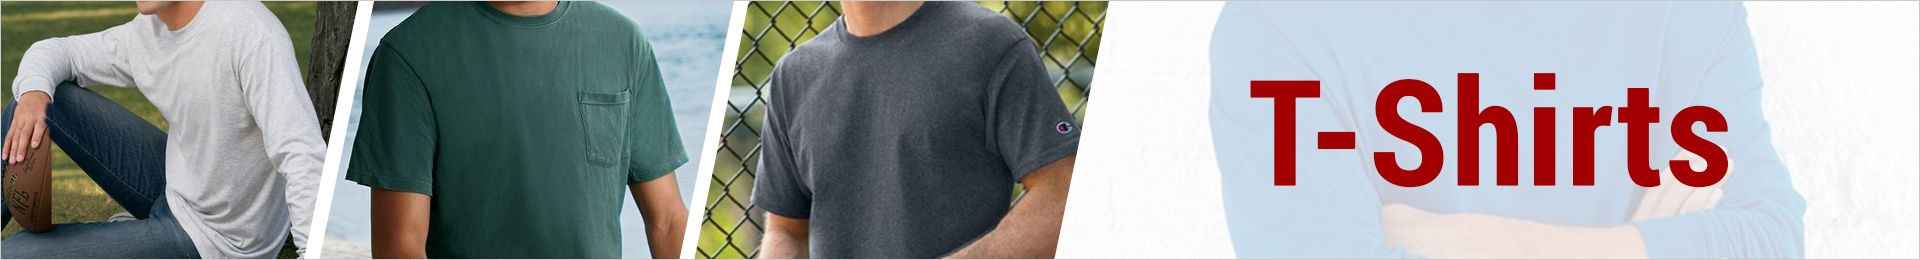 Buy Mens T Shirts in Bulk